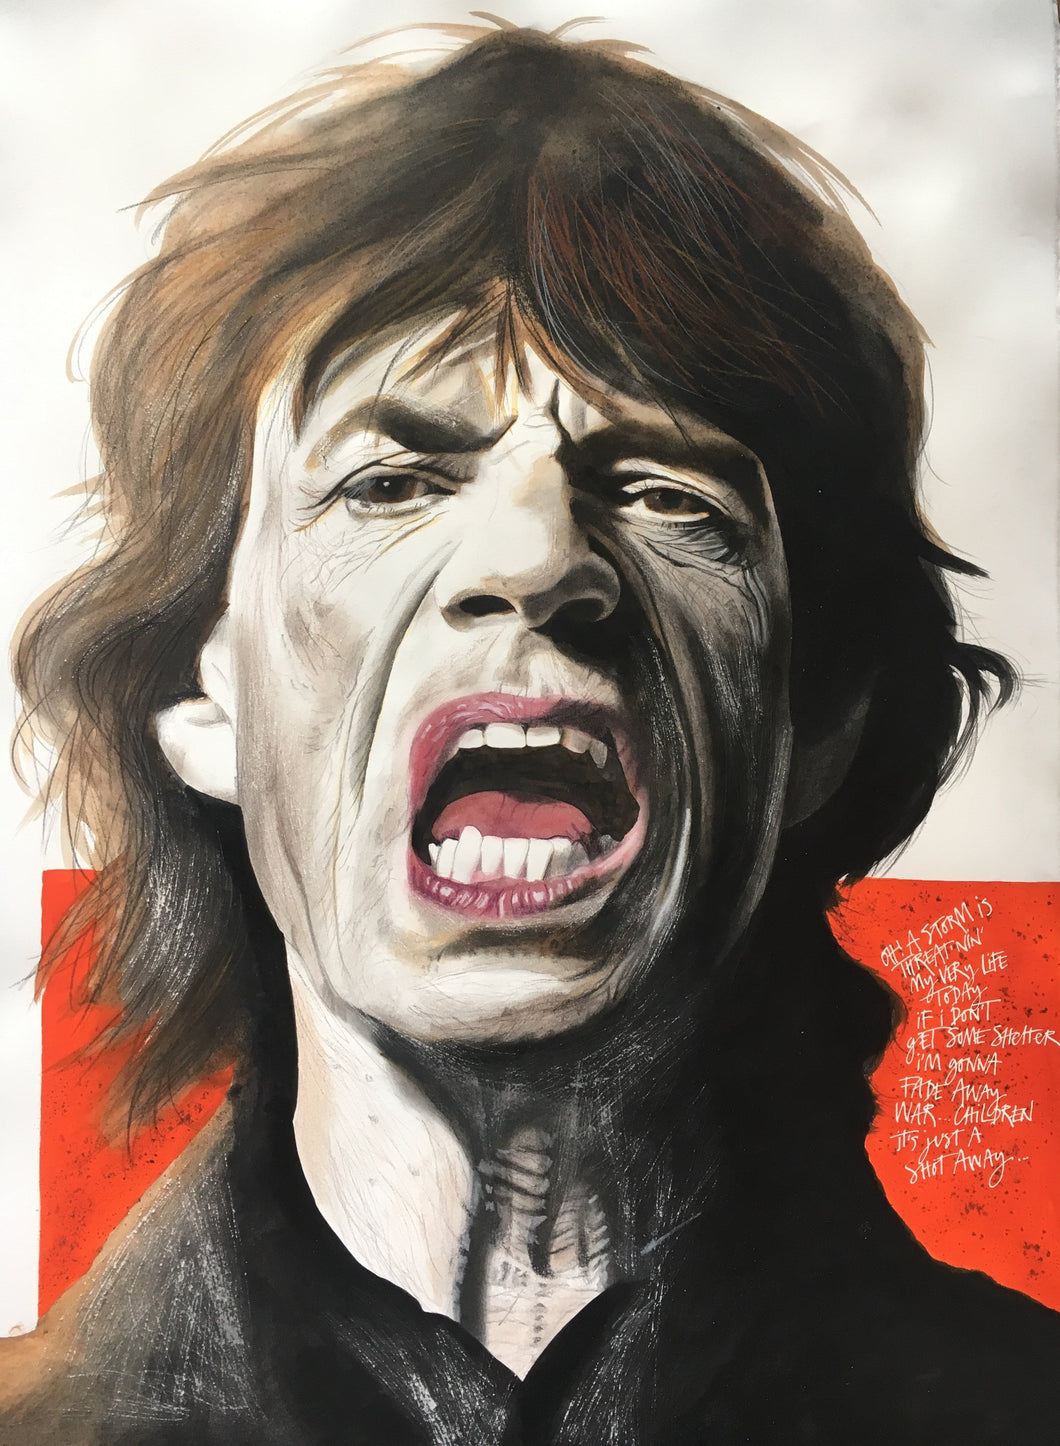 Mick's Just a Shot Away